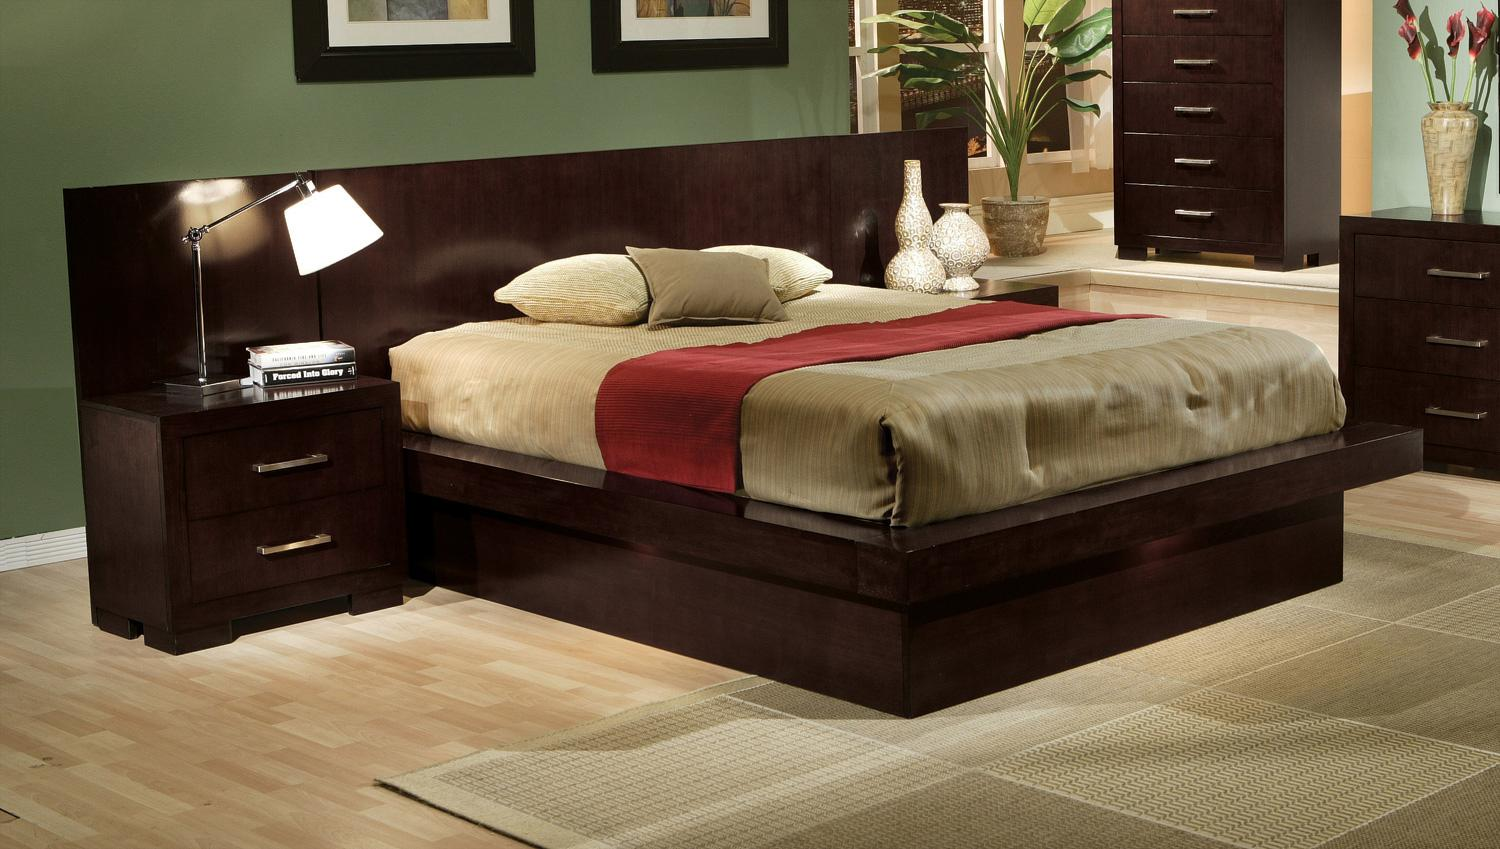 Coaster jessica queen pier platform bed with rail seating and lights rife 39 s home furniture Home furniture queen size bed